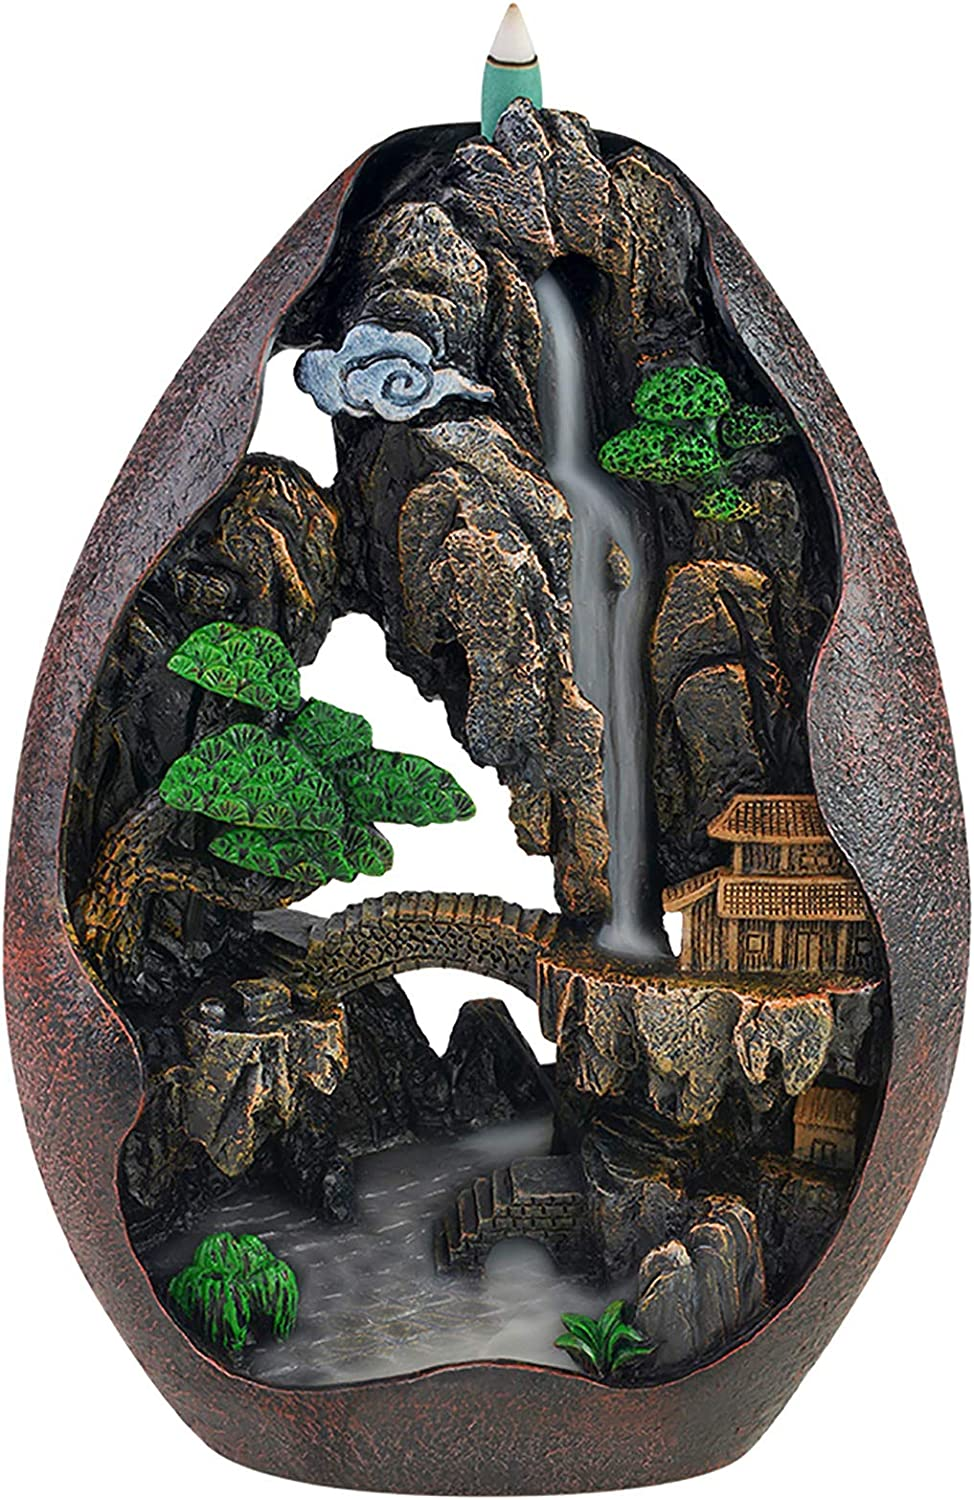 SOYO Don't miss the campaign Waterfall Incense Burner Mountain Holder Backflow trust R